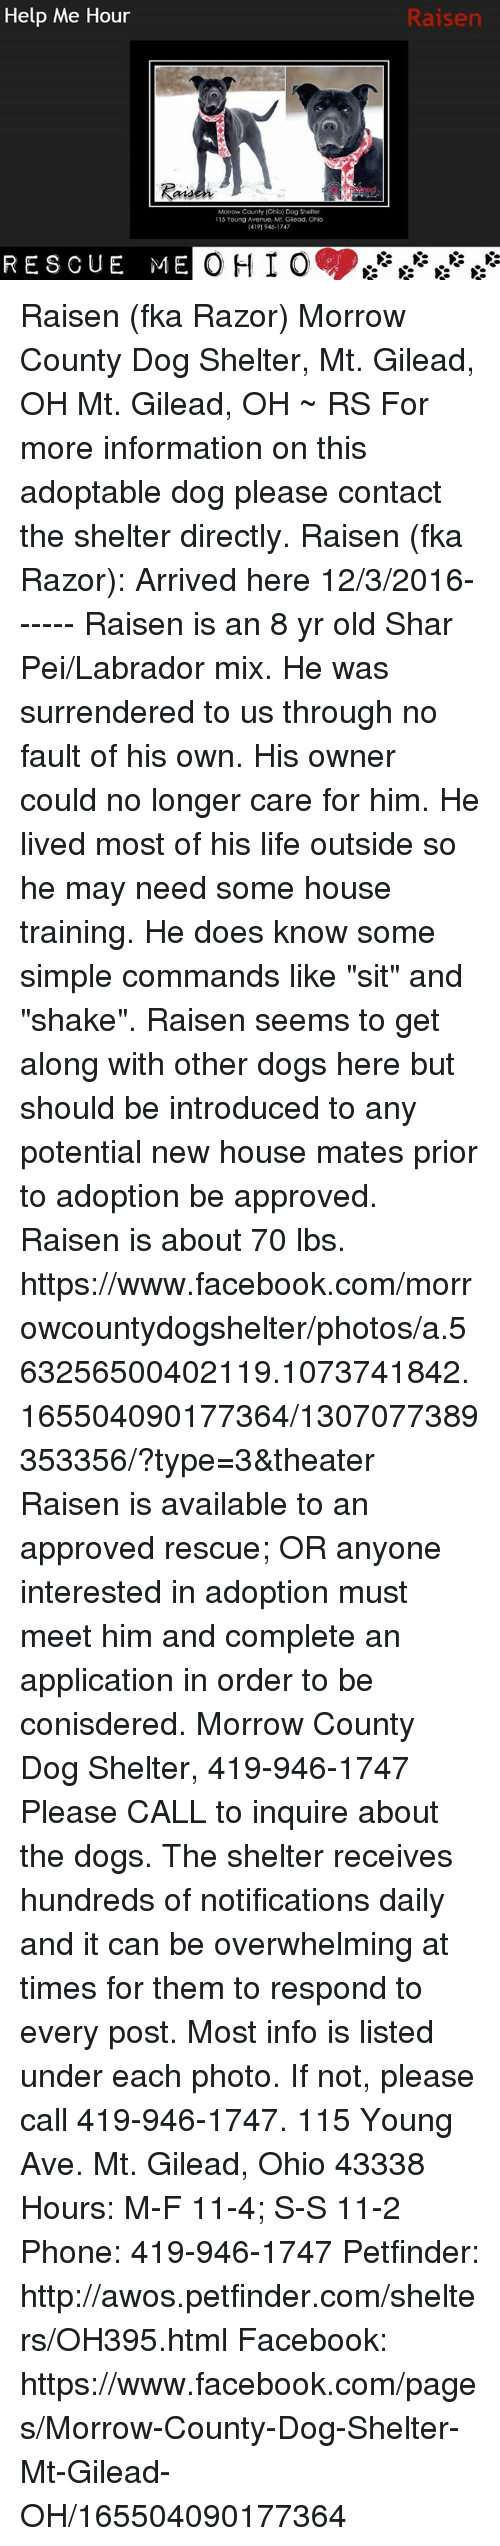 Ohio morrow county mount gilead - Dogs Facebook And Life Help Me Hour Morrow County Ohio Dog